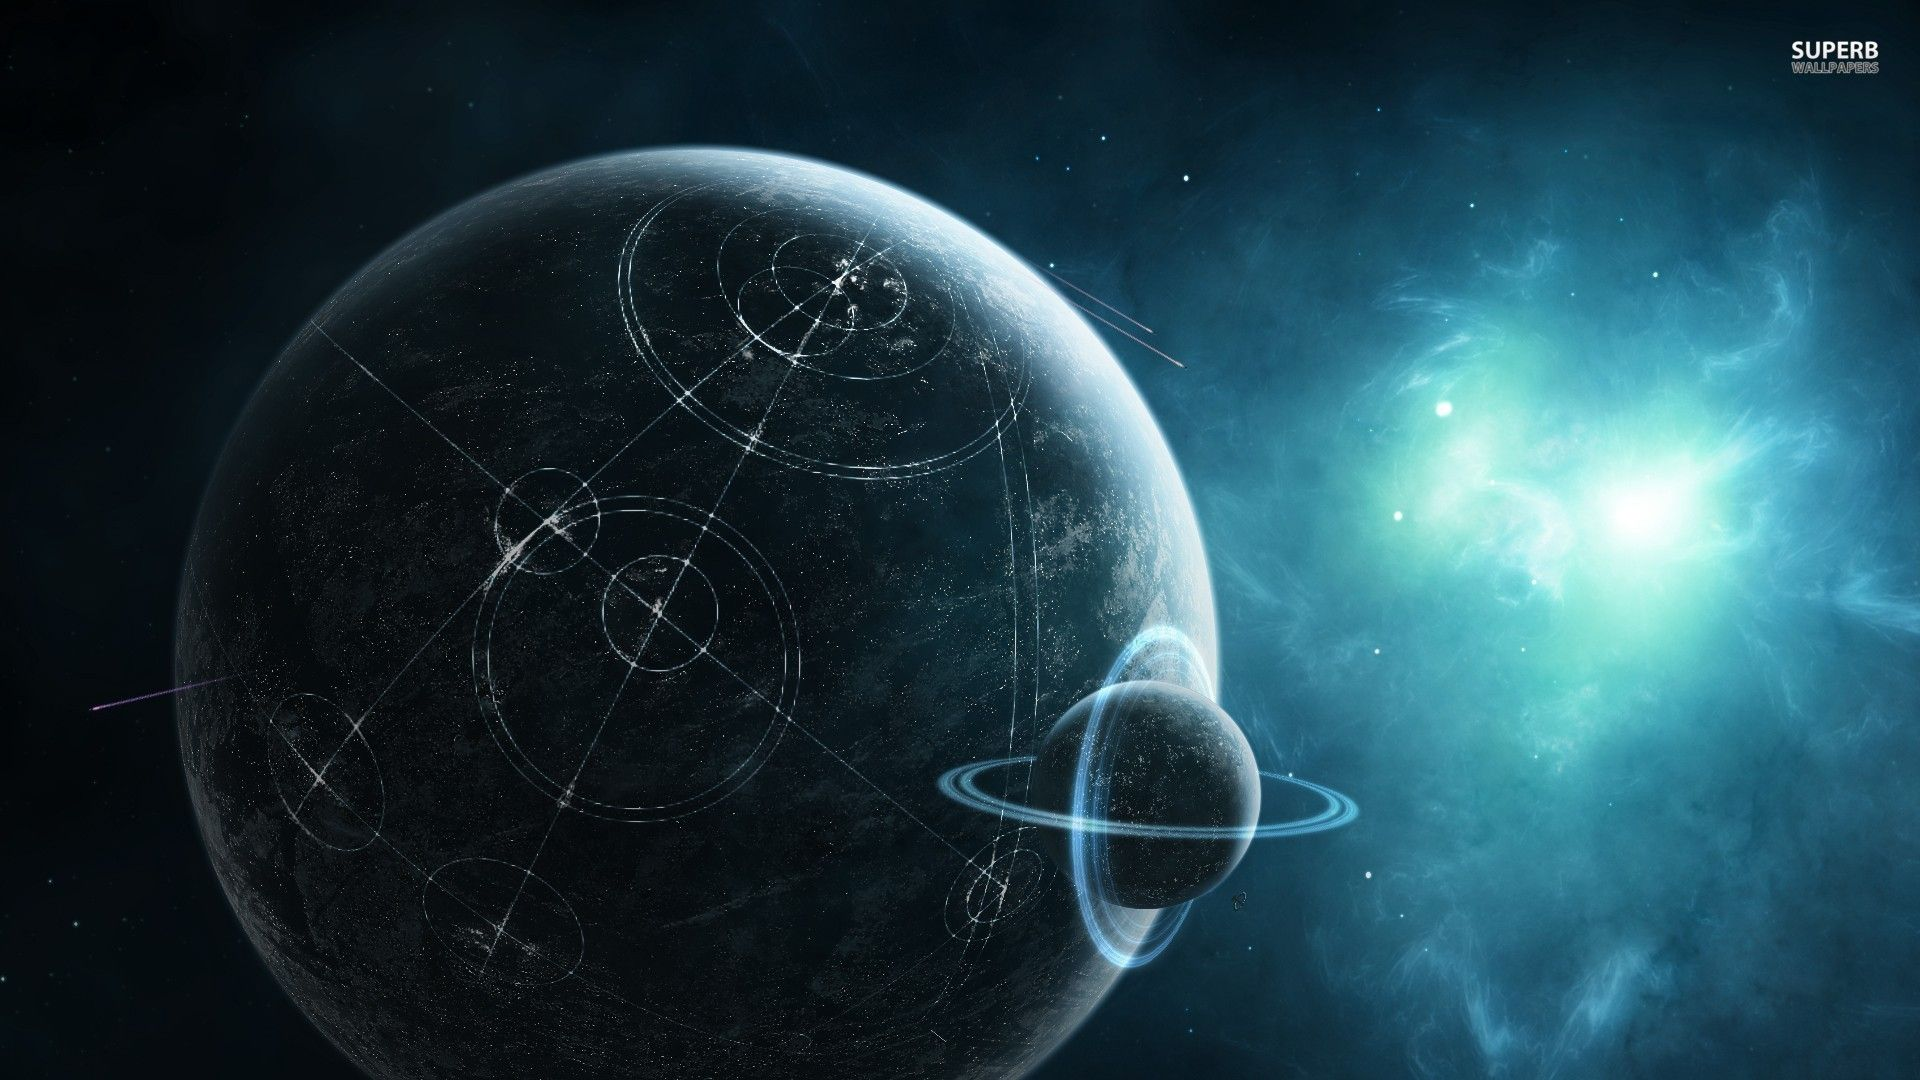 Iphone 5 Hd Space Wallpaper Futuristic Planets Google Search Space Planets